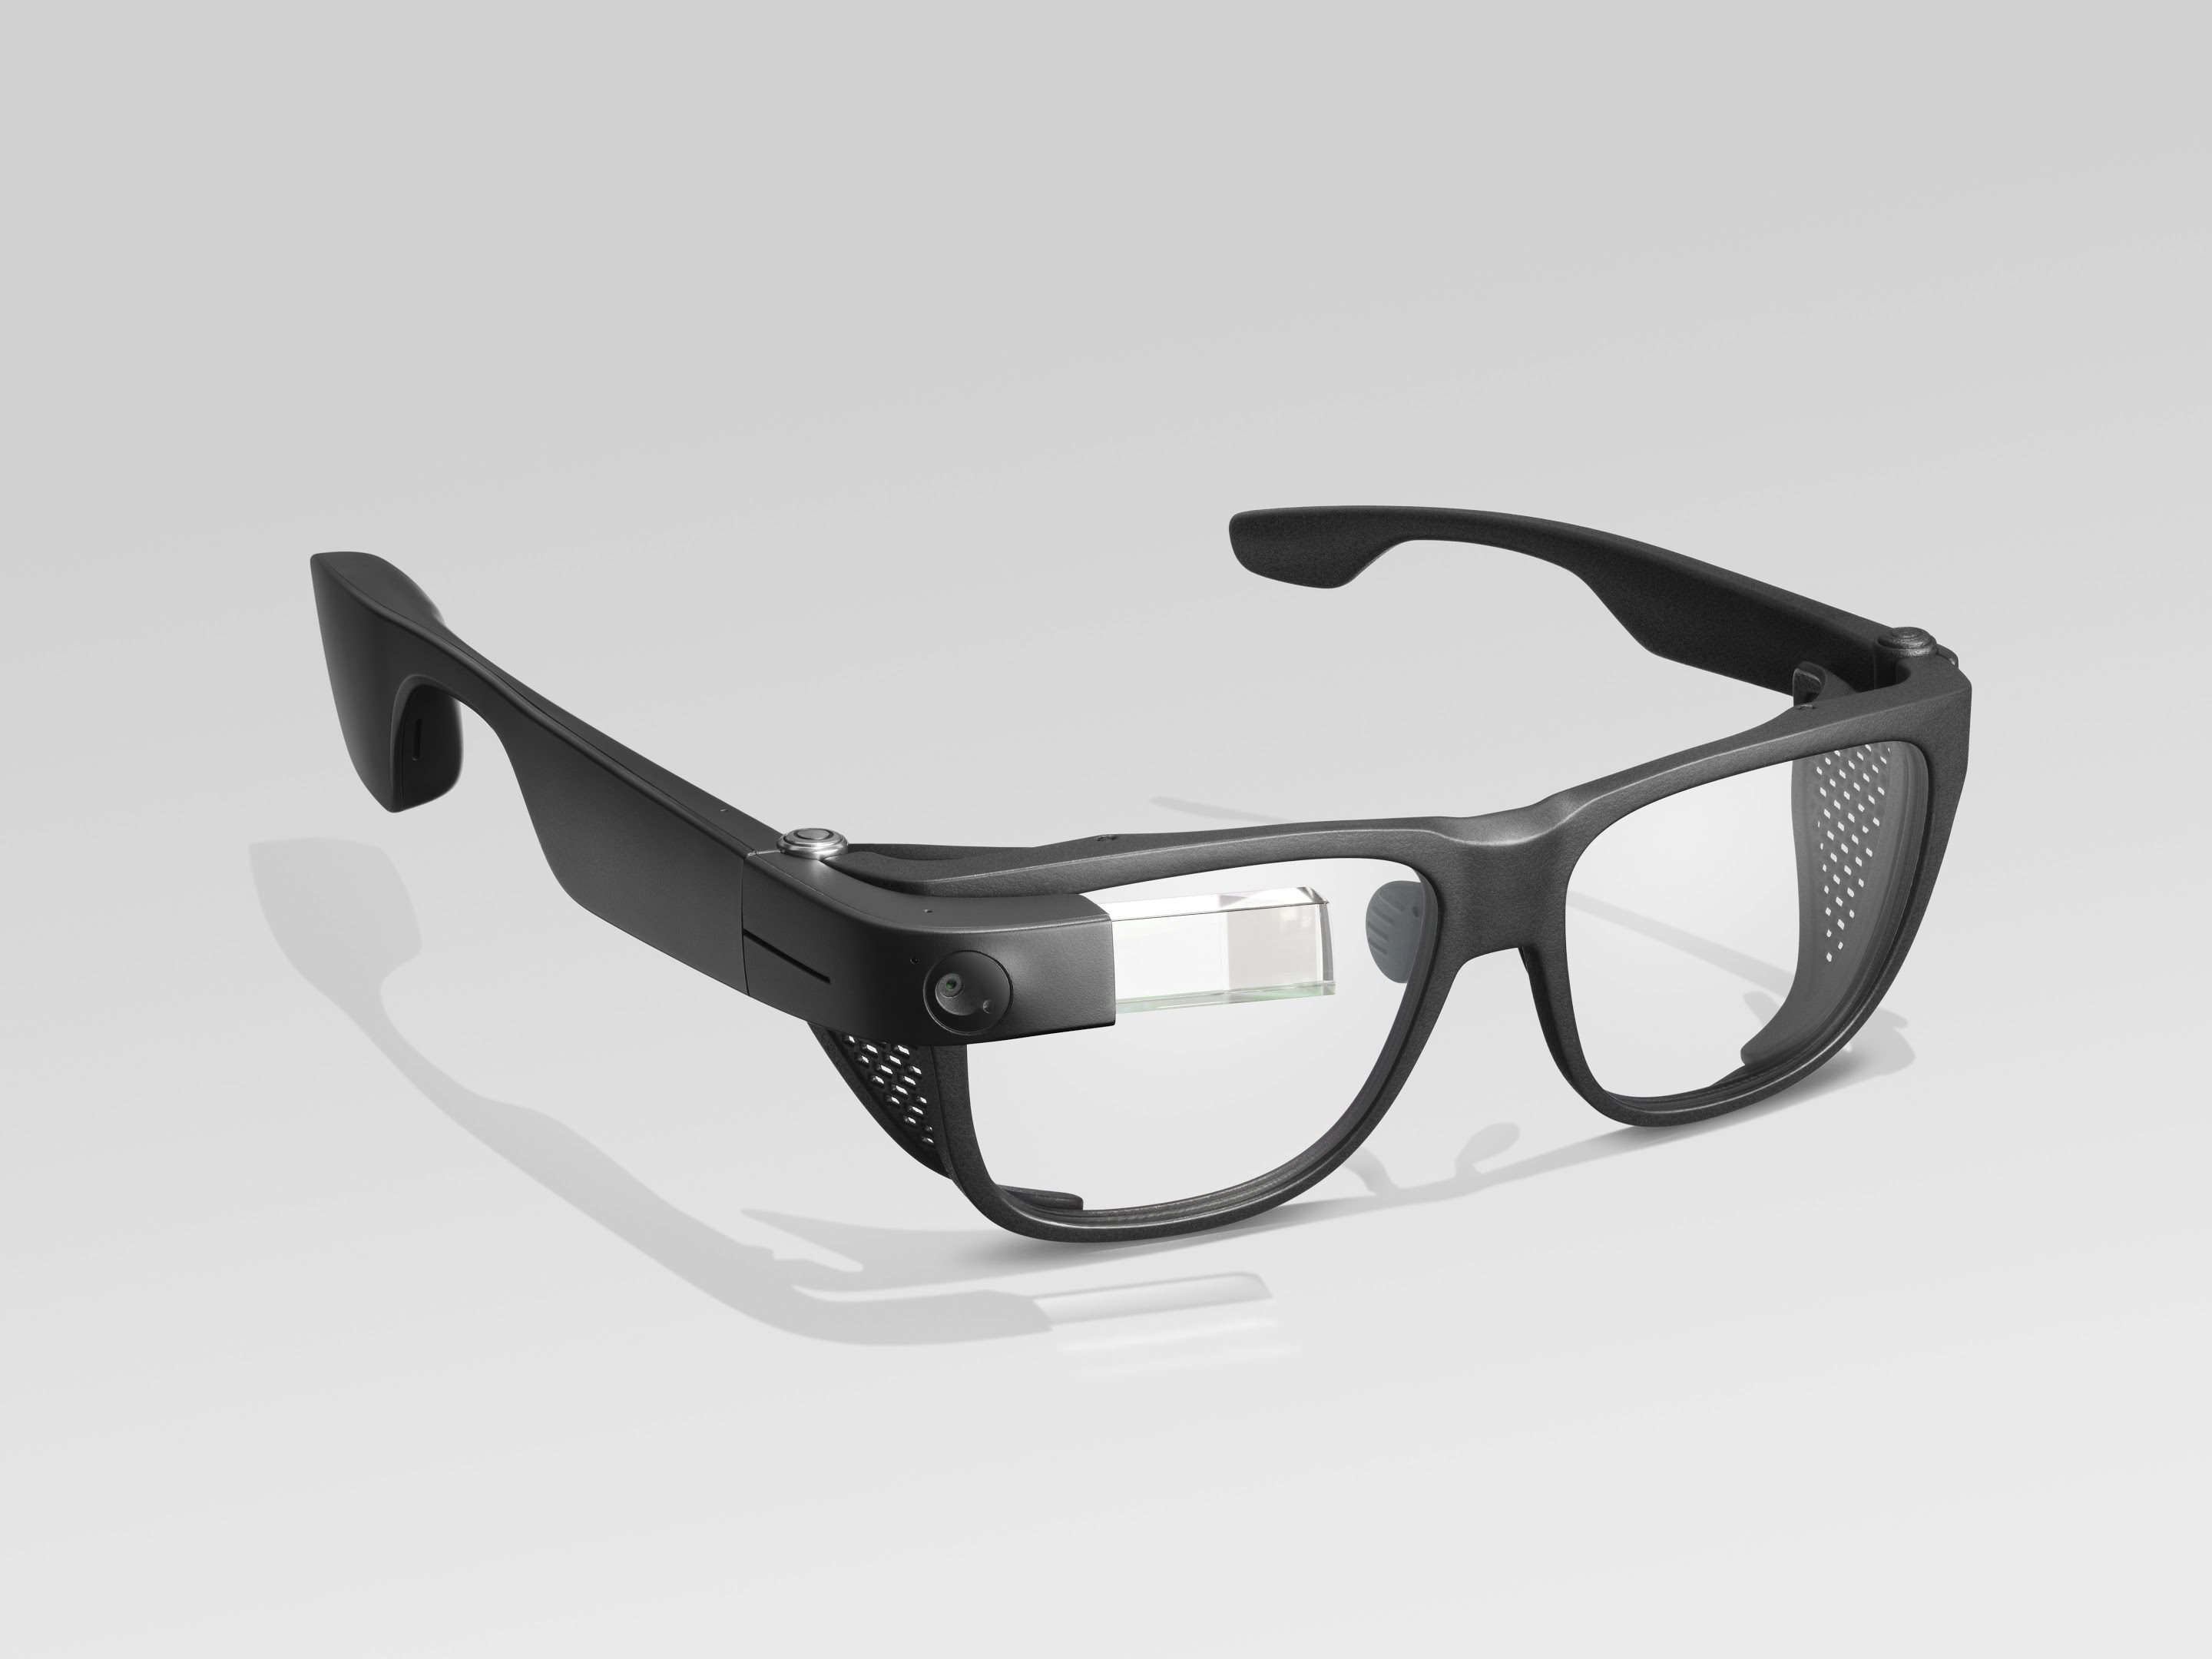 Picture of the Google Glass with Smith Optics Frame